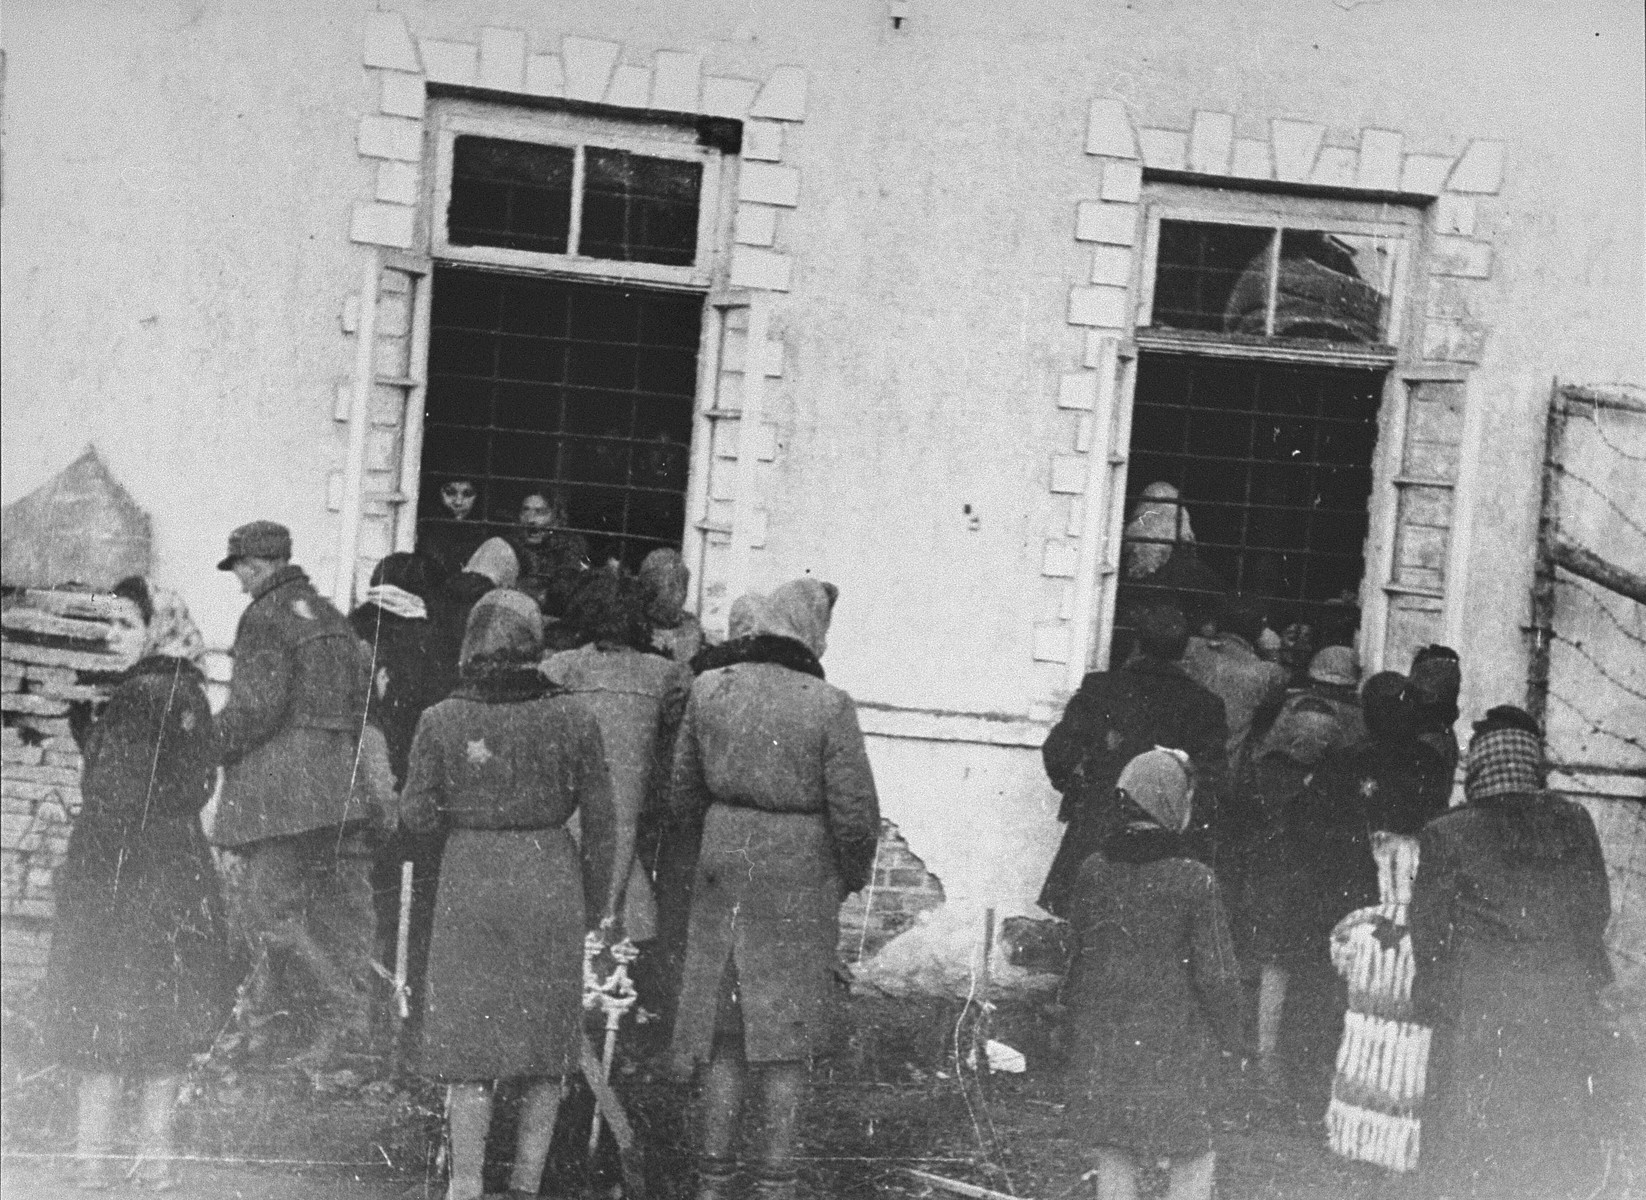 Kovno ghetto jail, visiting imprisoned friends and relatives.